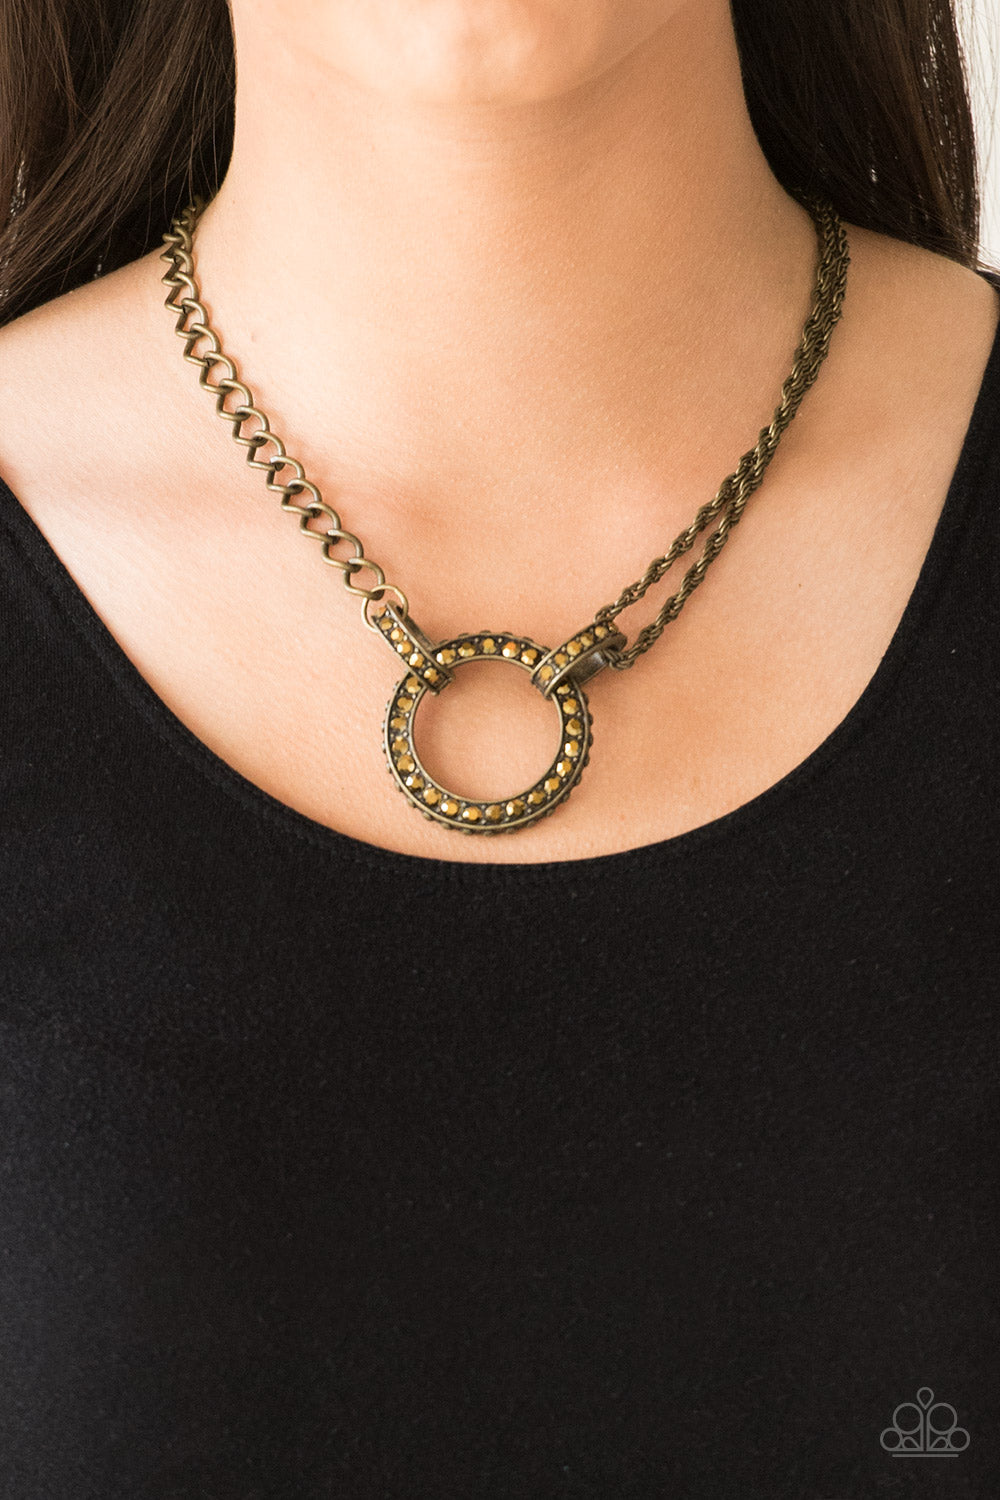 Paparazzi Jewelry & Accessories - Razzle Dazzle - Brass Necklace. Bling By Titia Boutique